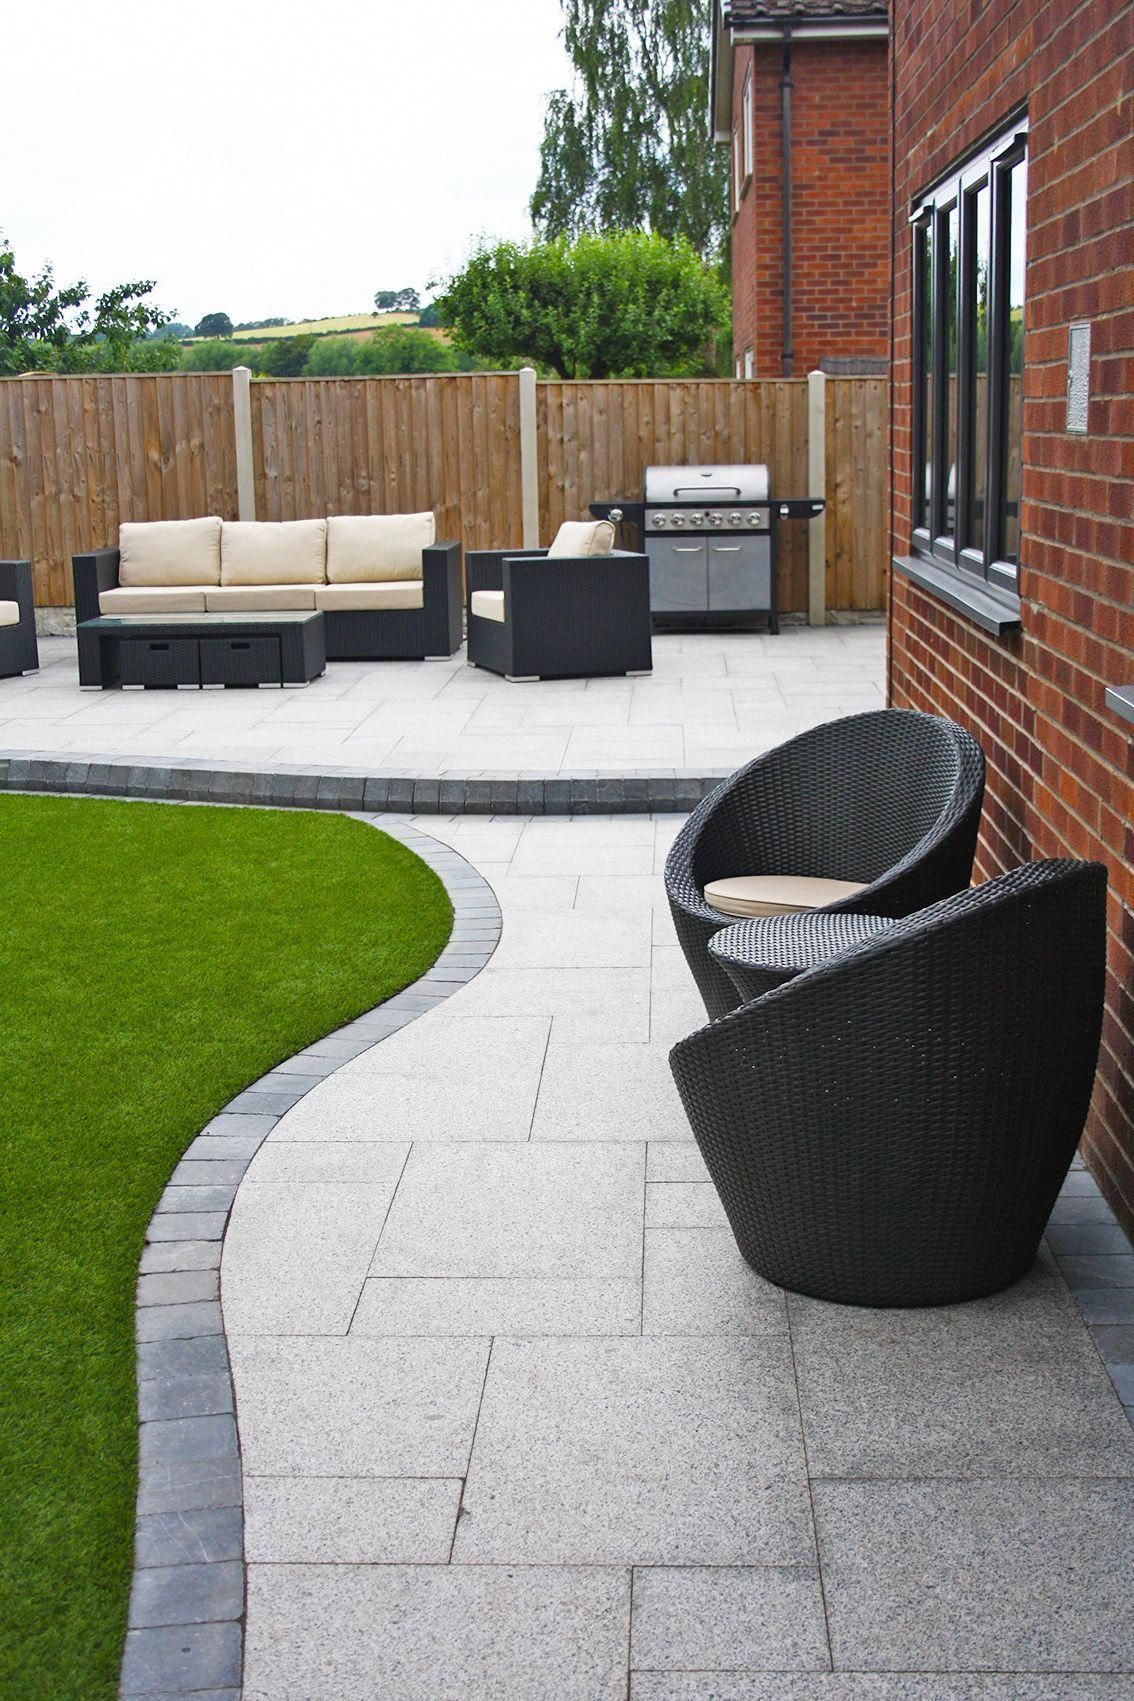 Garden Design Ideas Uk For A Large Garden Gardendesignideas